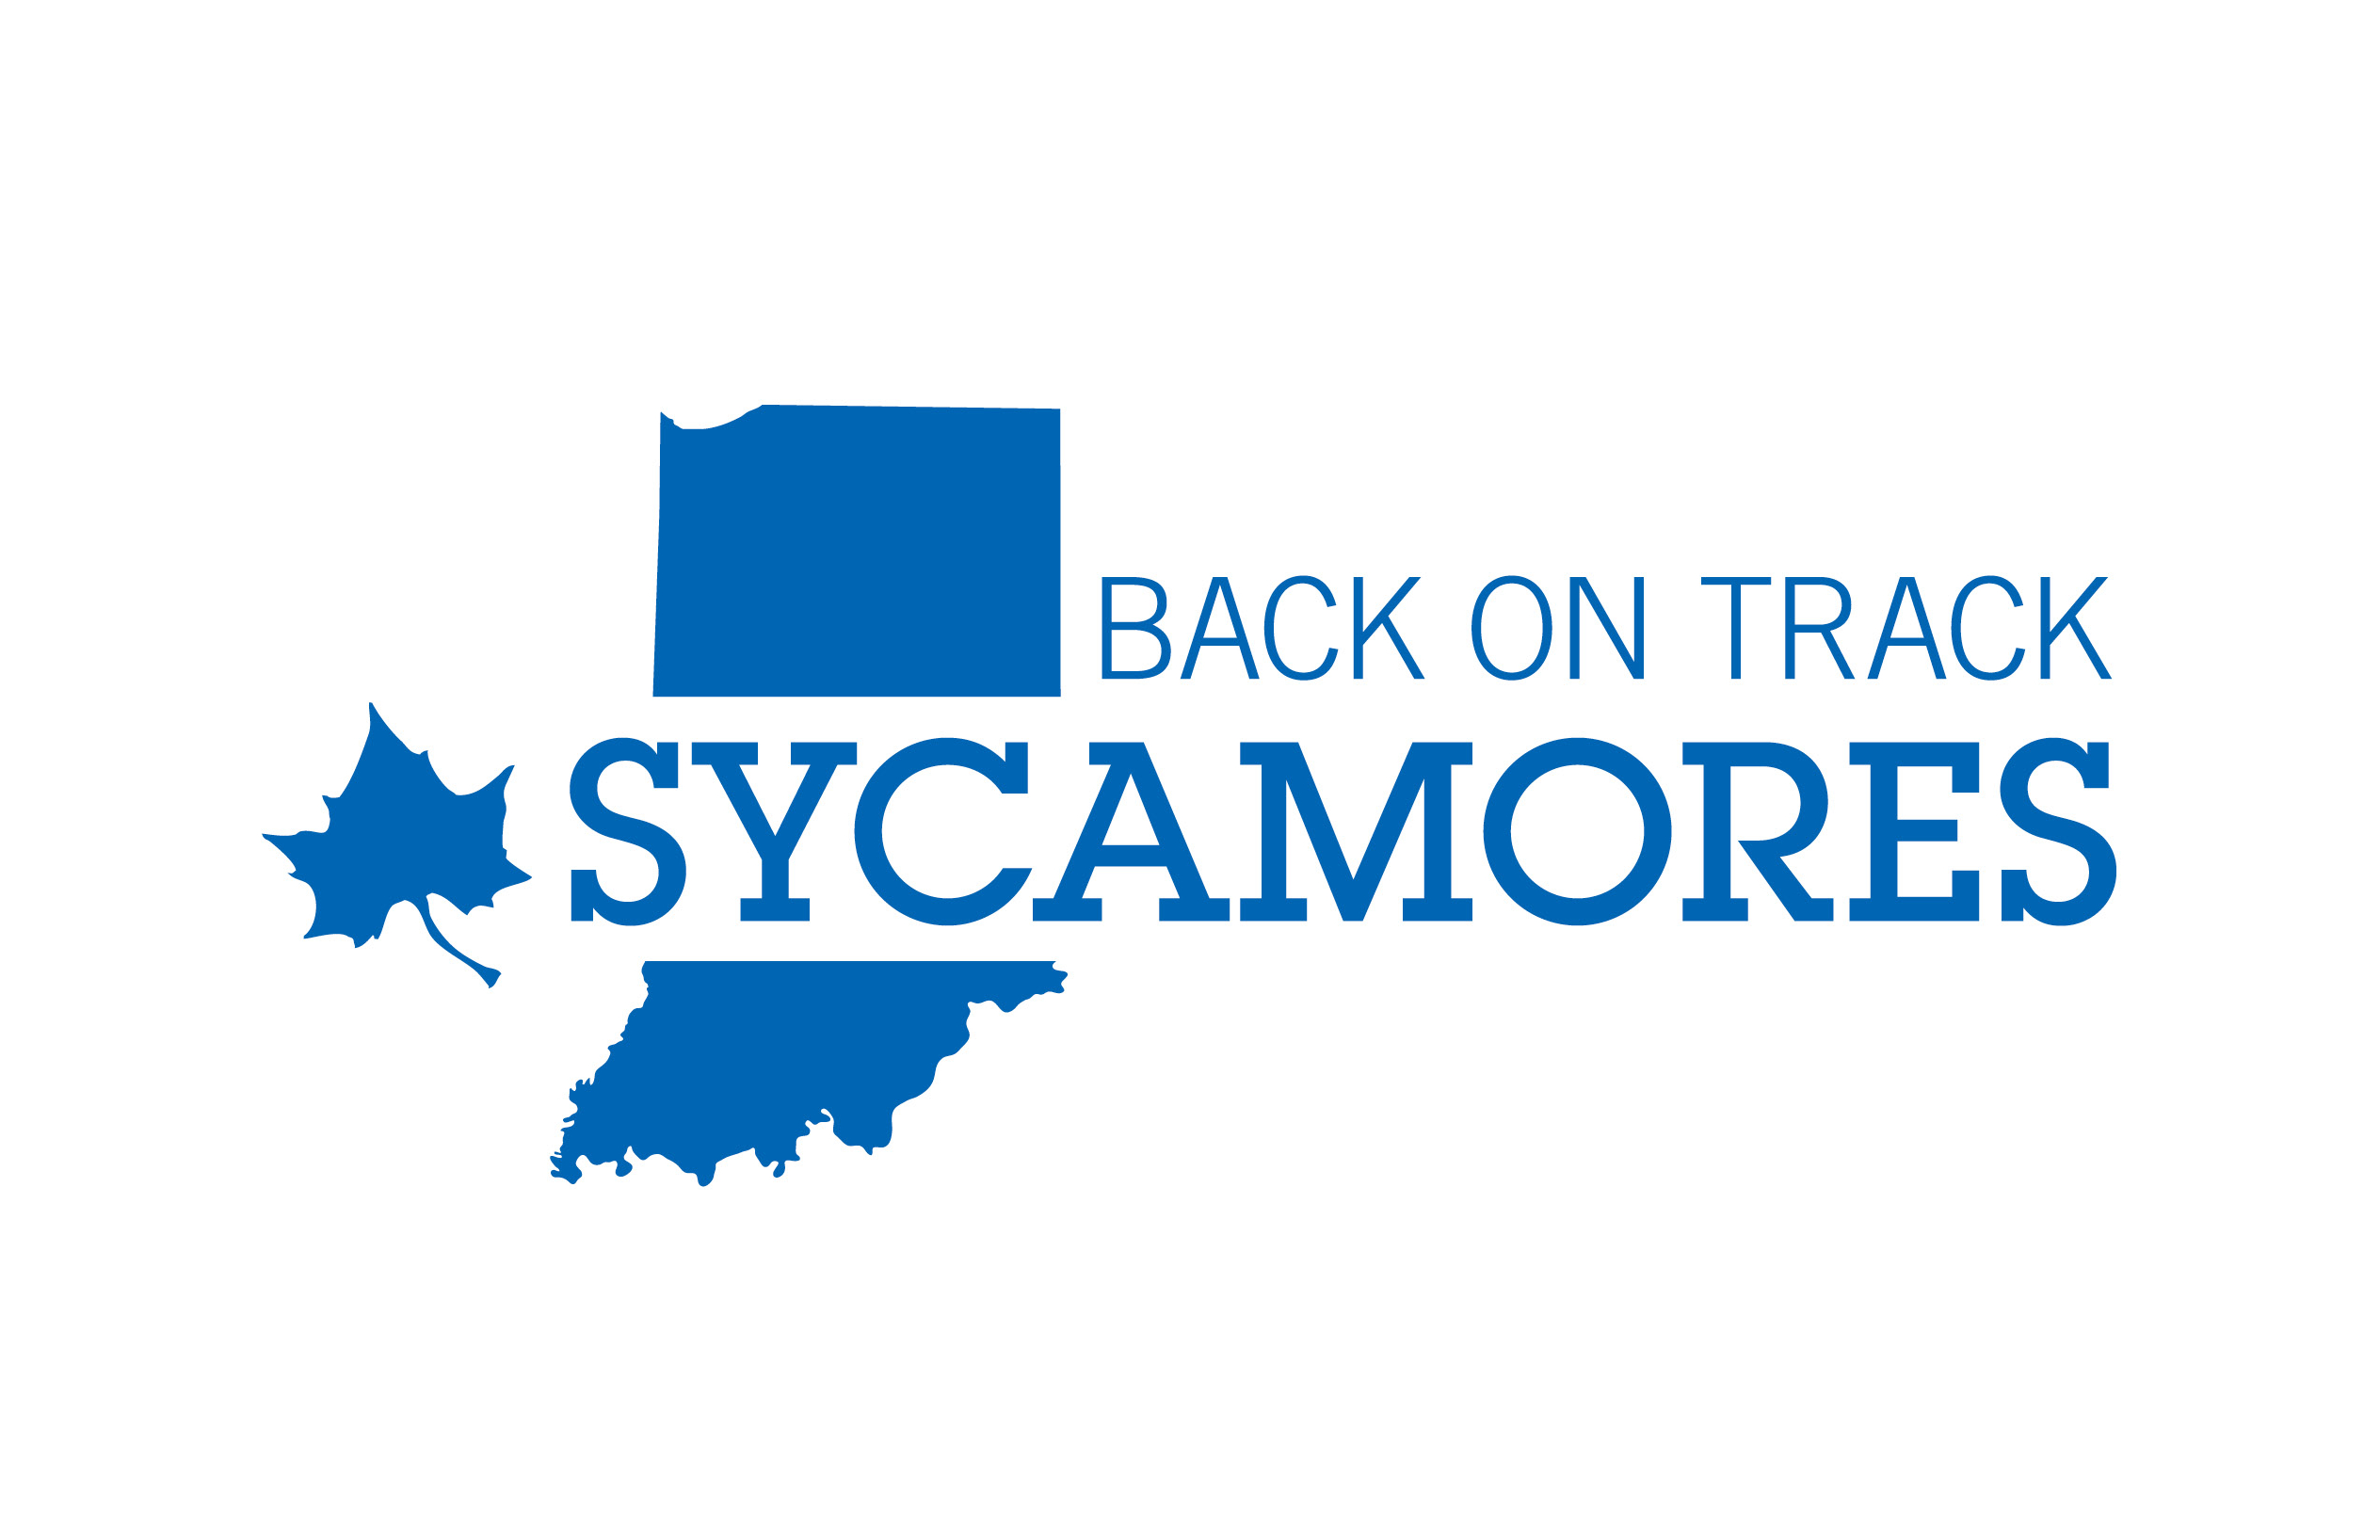 Sycamores Back on Track